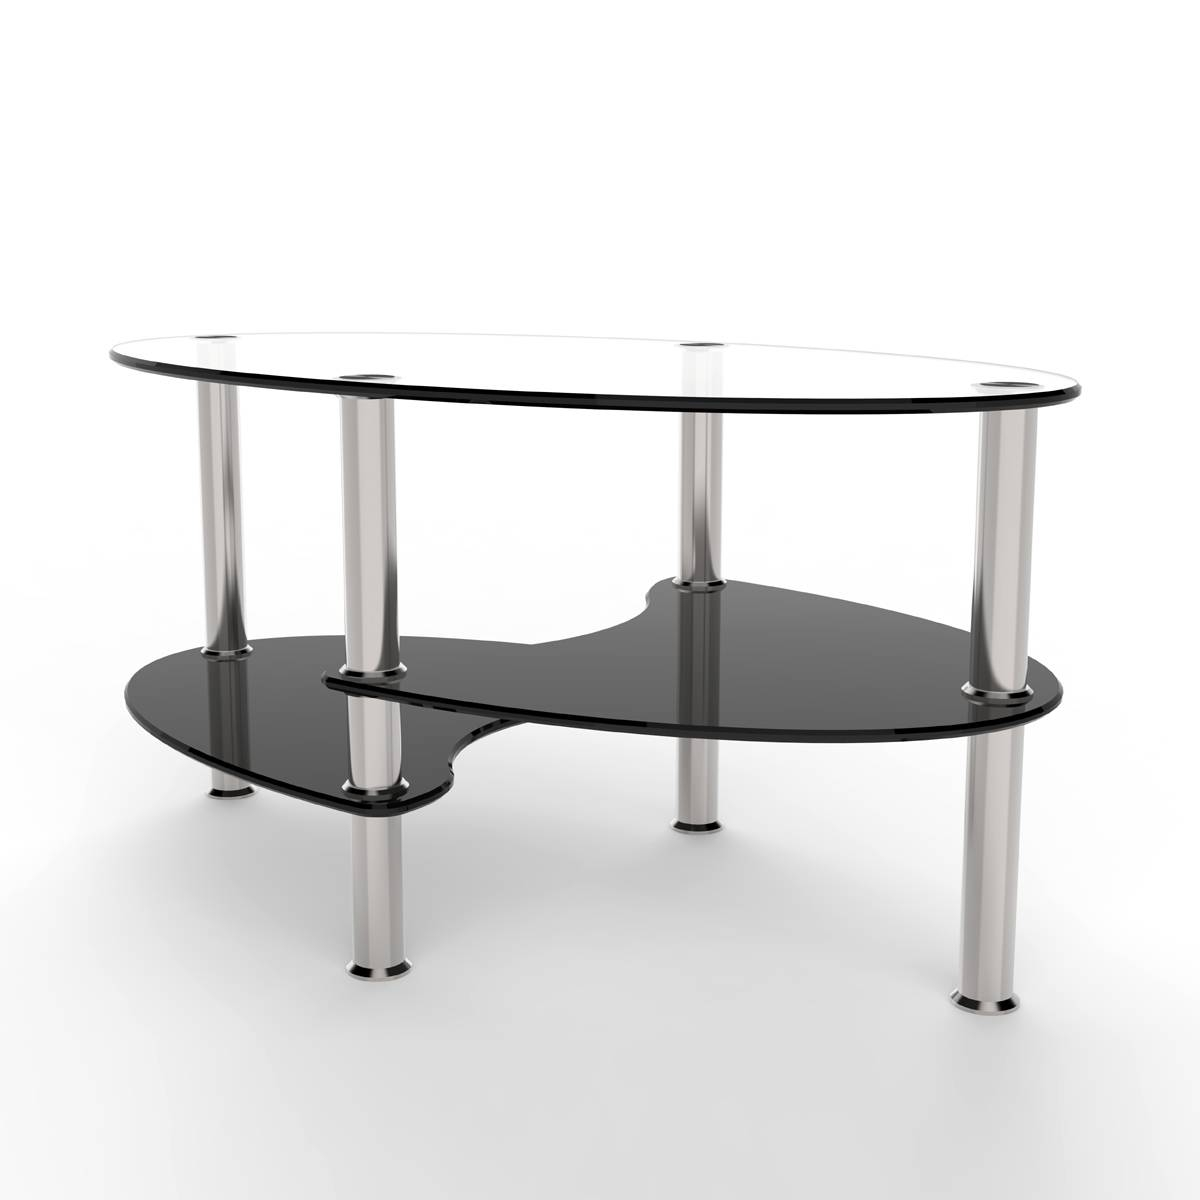 Cleveland 38 Inch Glass Coffee Table With Black Mesh Magazine Holder inside Dark Glass Coffee Tables (Image 9 of 30)